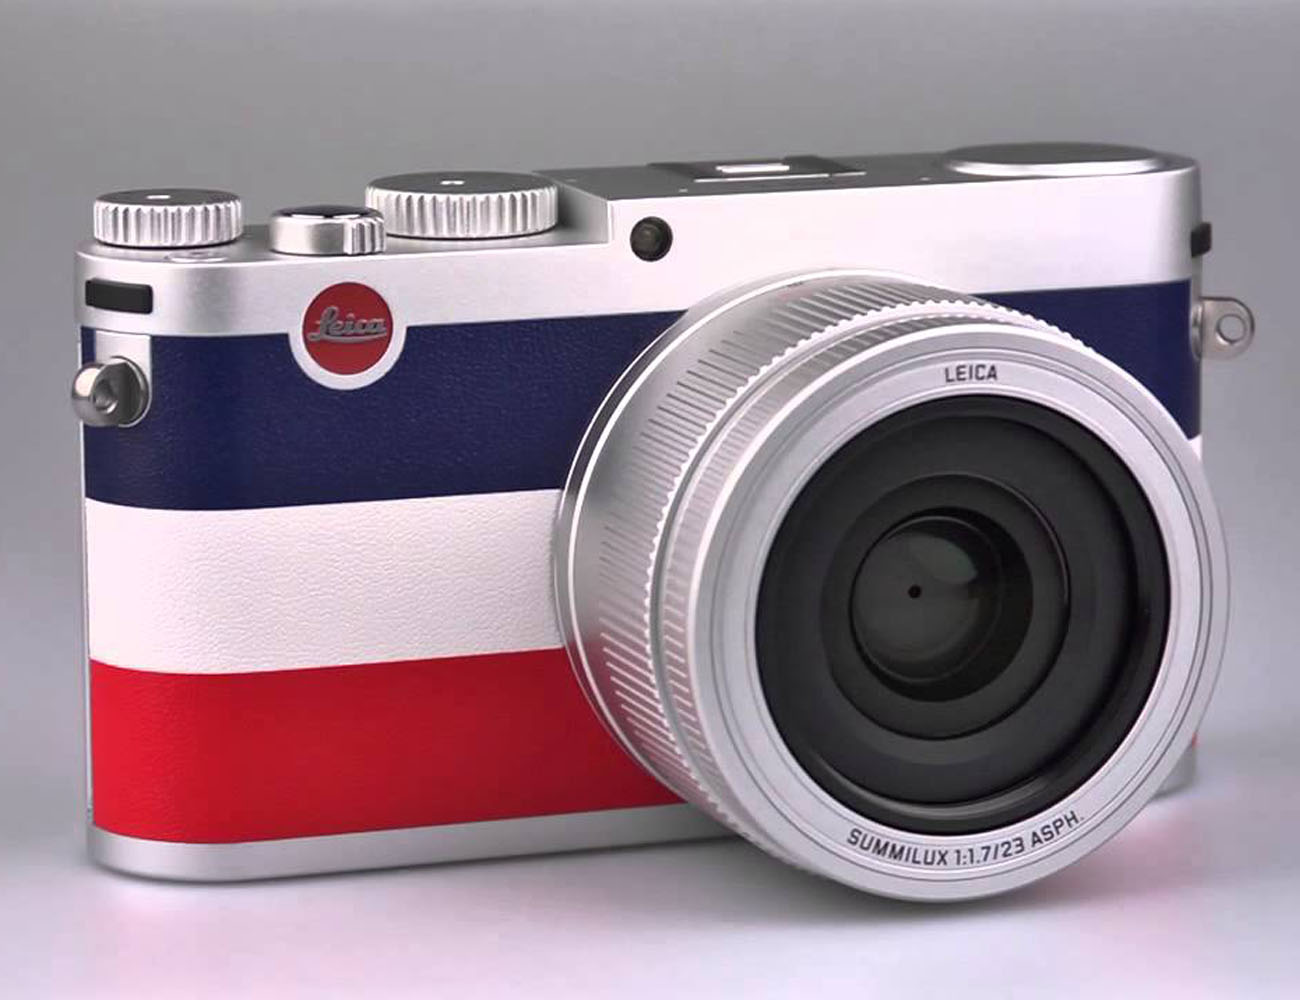 Leica X Typ 113 Moncler Edition Camera